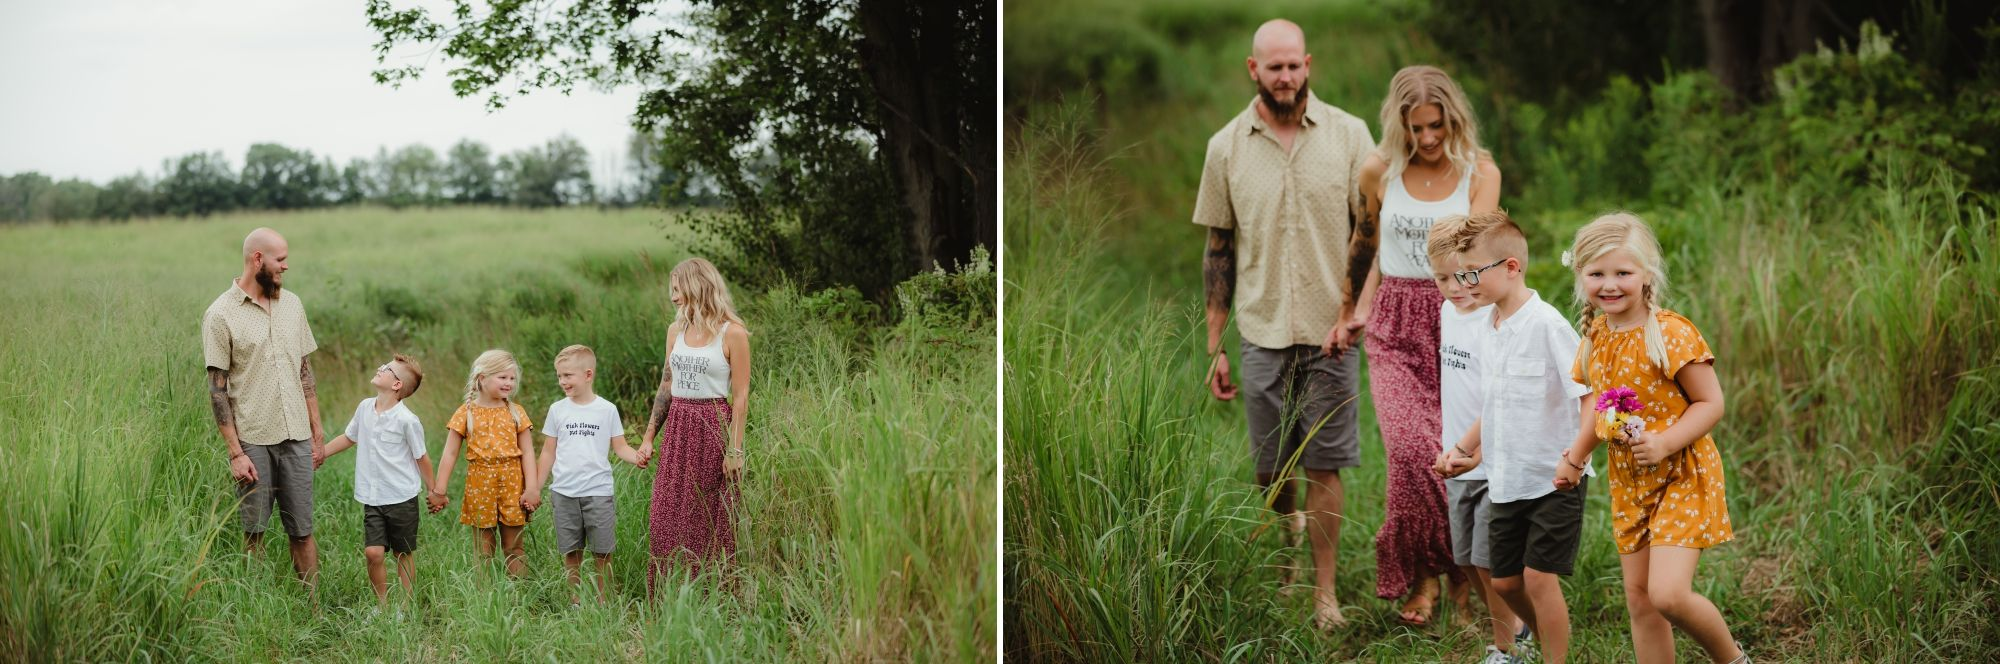 Photos of a family of five holding hands standing in tall grass and then walking.